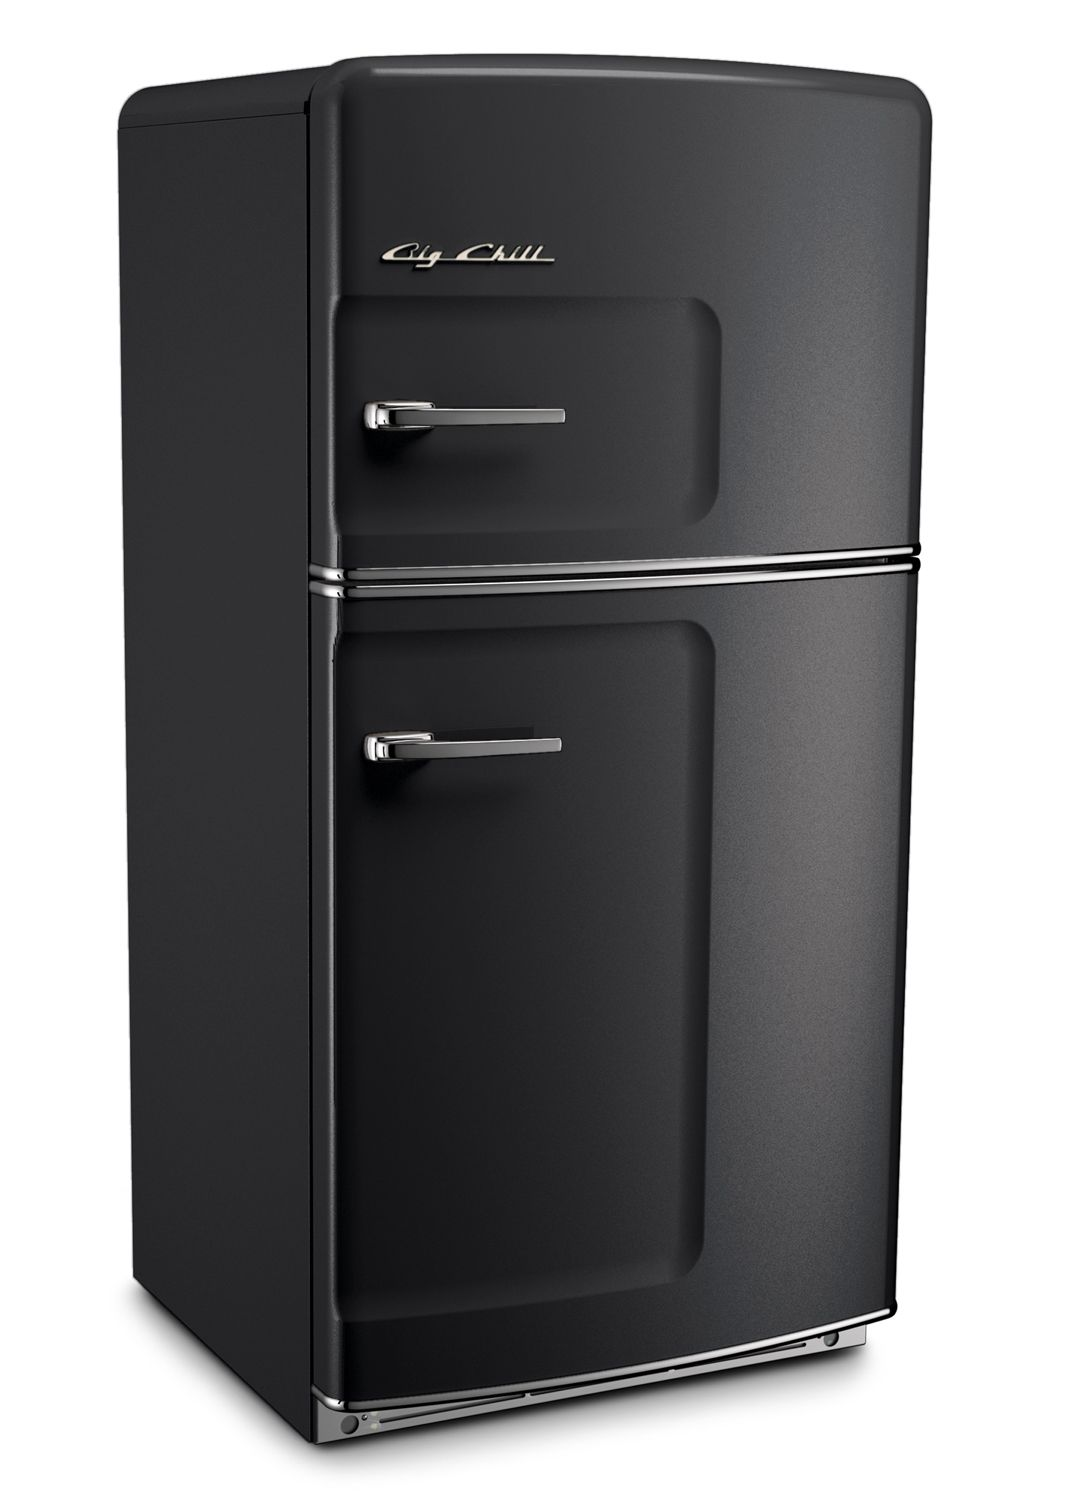 big chill retro fridges keeps your food cold and your